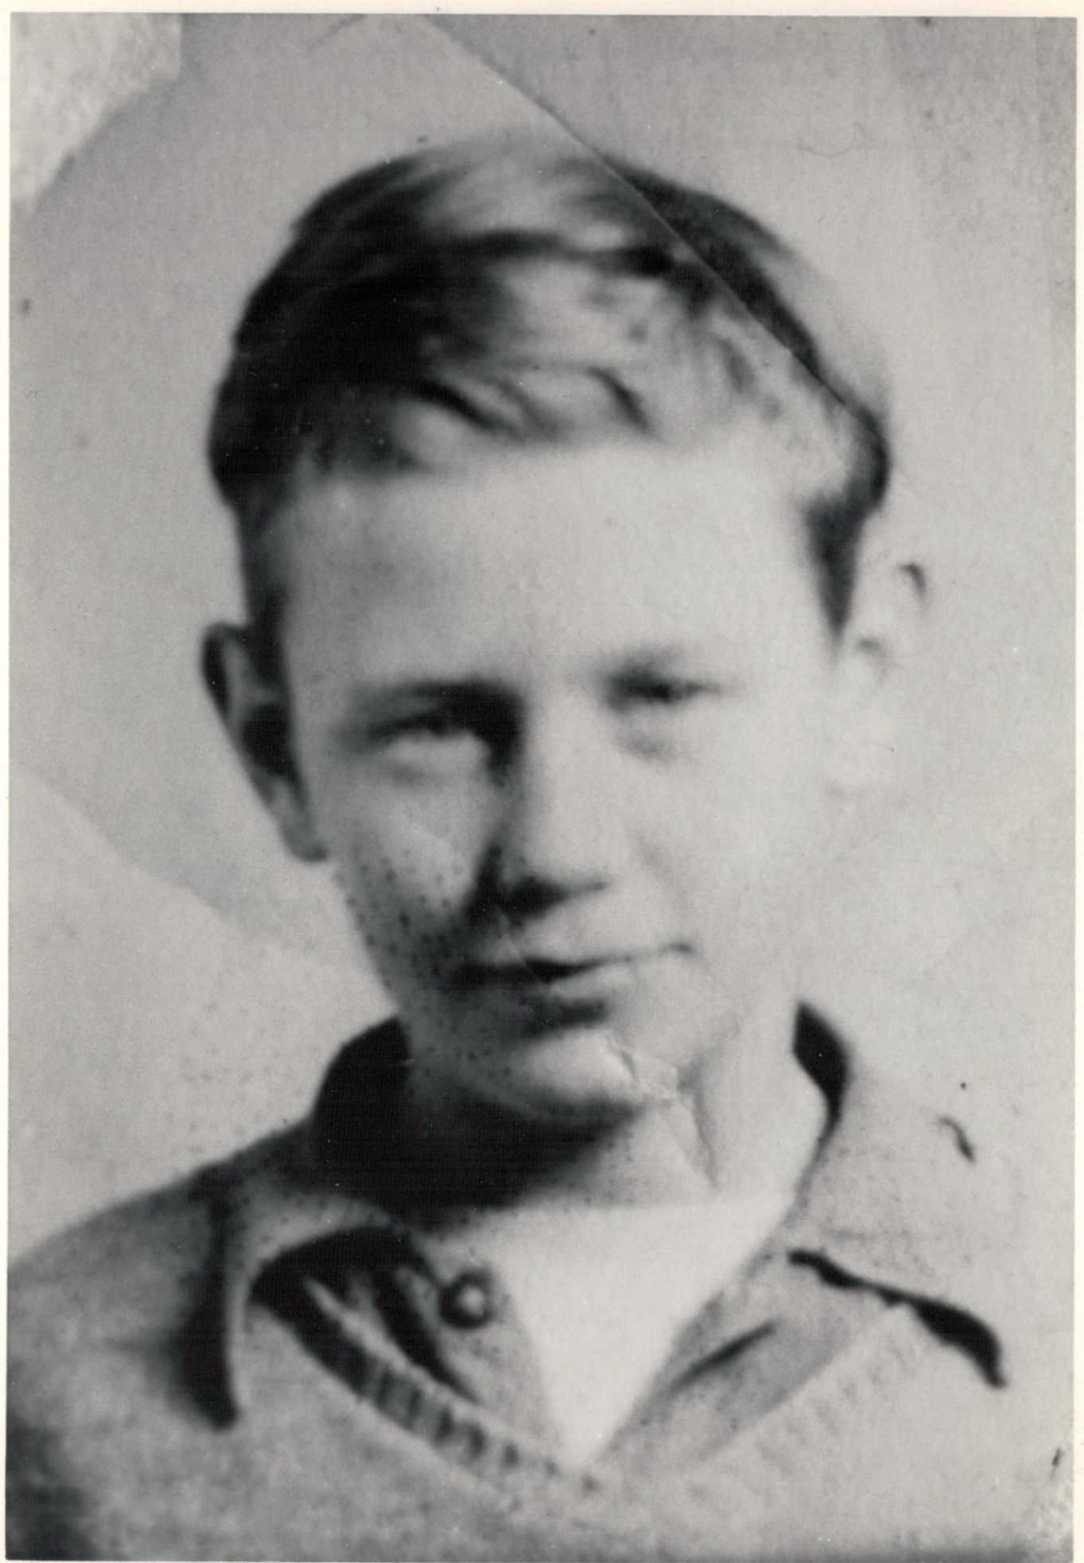 Donald E Denney as a boy